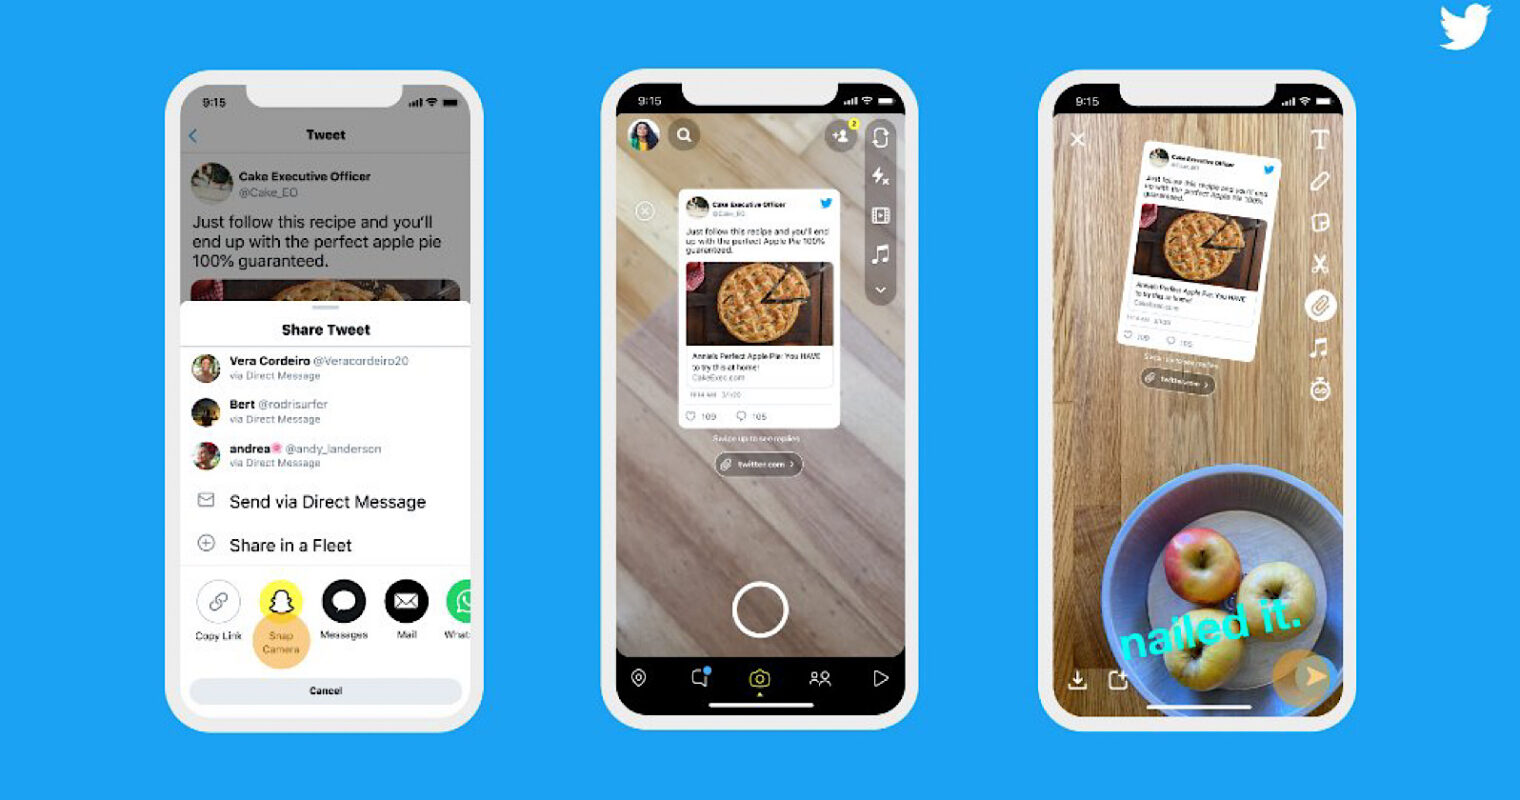 Twitter Lets Users Share Tweets to Snapchat